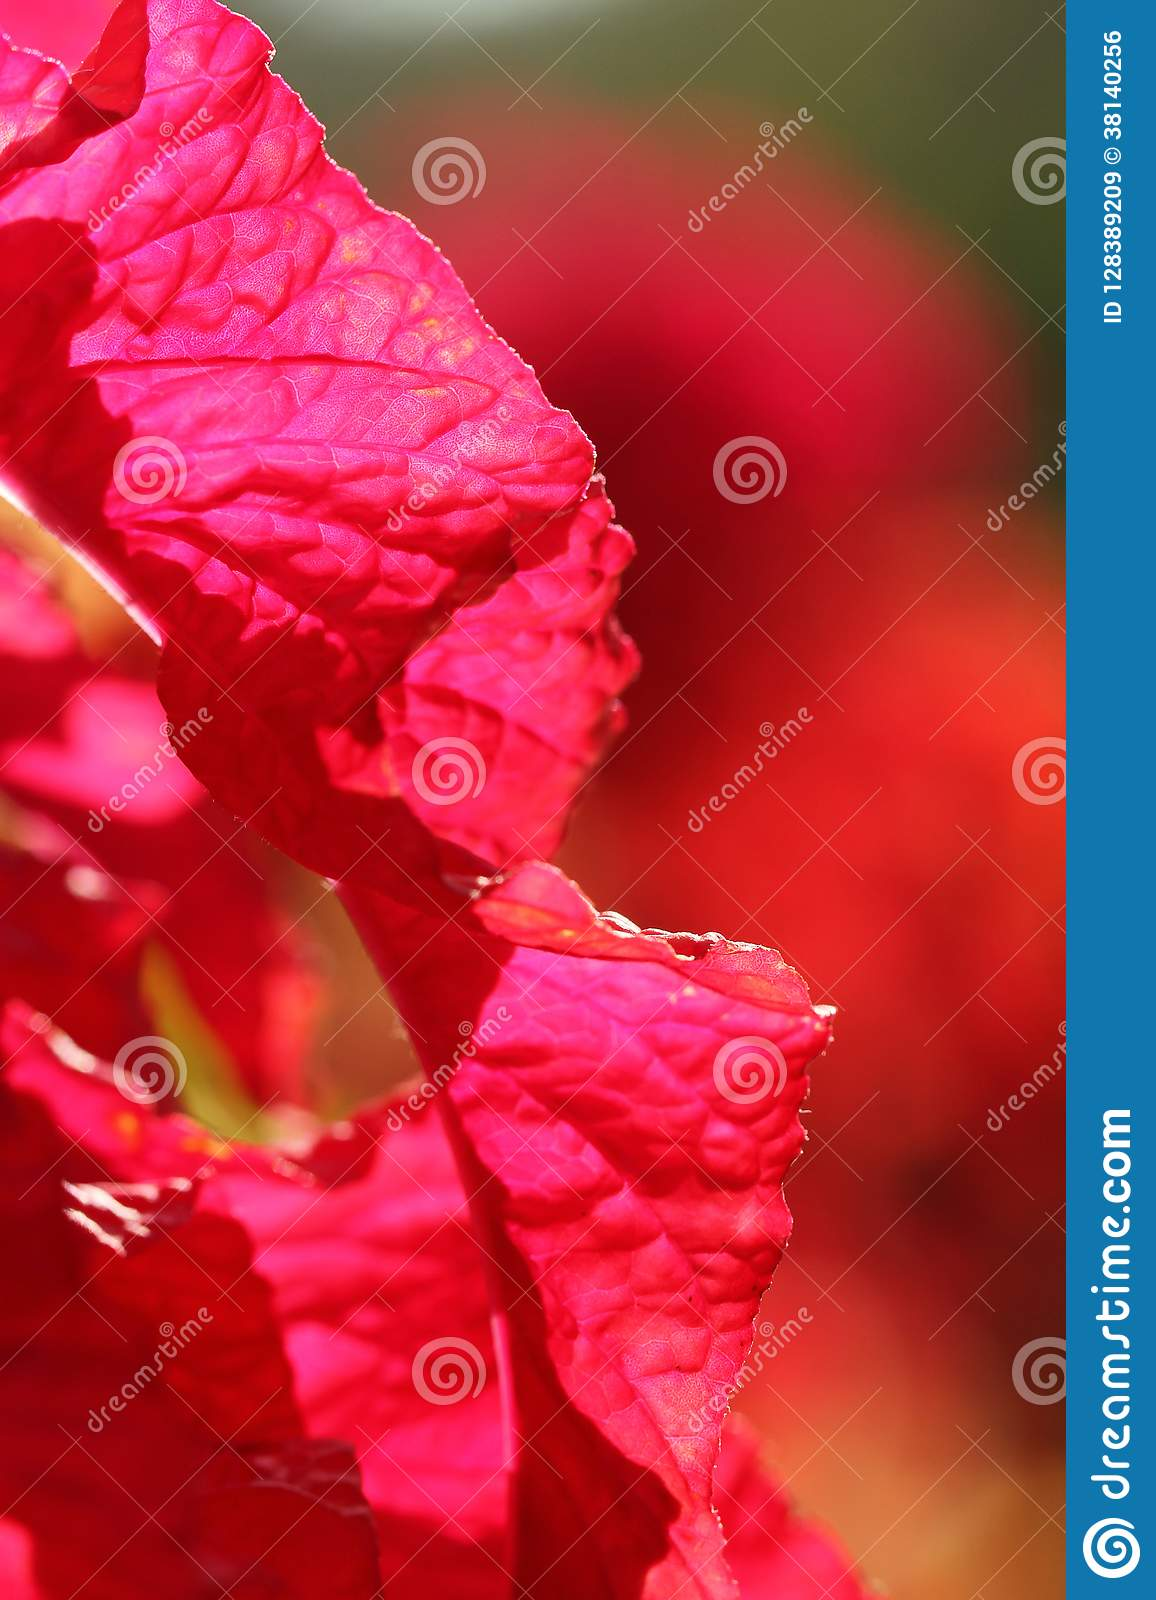 Texture of red leaves in sunlight